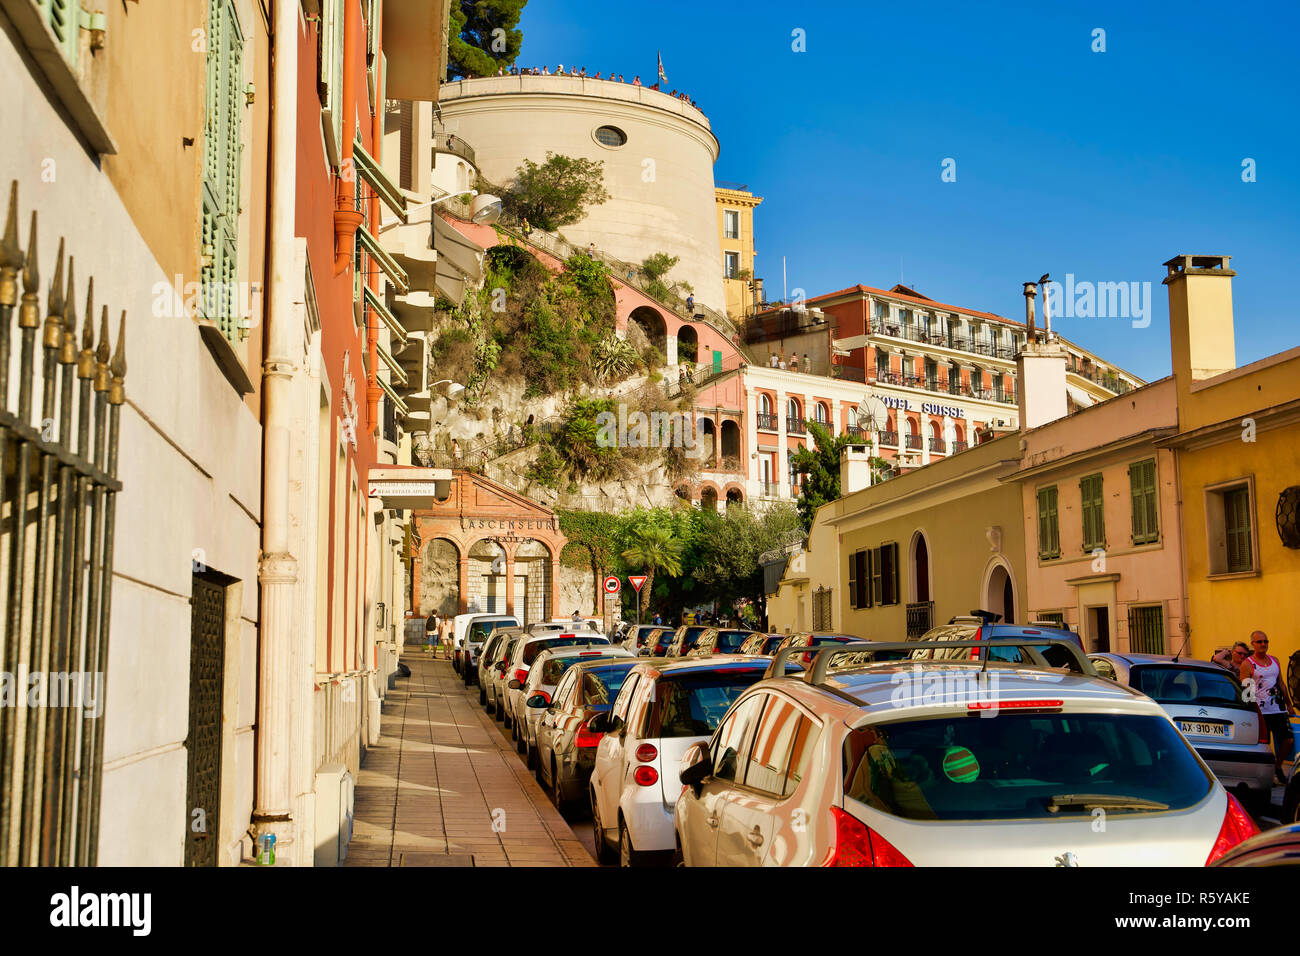 9cfe45c2a6b NICE, FRANCE - AUGUST 10, 2018: The historic street of the city overlooking